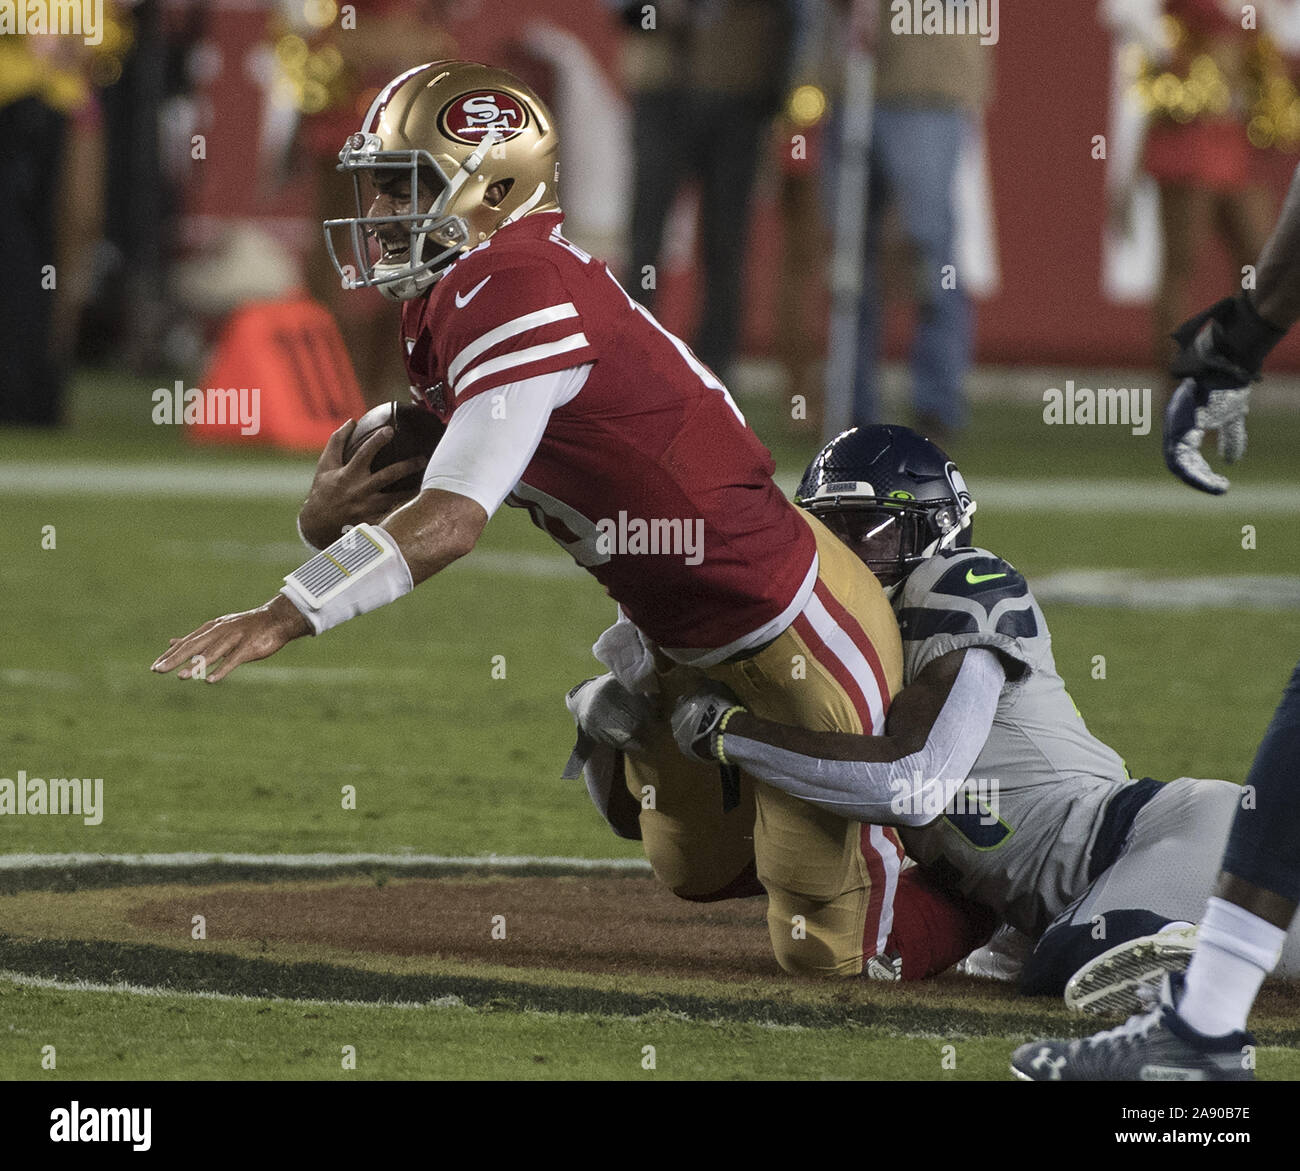 Santa Clara, California, USA . 11th Nov, 2019. San Francisco 49ers quarterback Jimmy Garoppolo (10) is sacked by the Seattle Seahawks in the first quarter at Levi's Stadium in Santa  Clara, California on Monday, November 11, 2019. The Seahawks defreated the 49ers 27-24 in overtime.    Photo by Terry Schmitt/UPI Credit: UPI/Alamy Live News Stock Photo